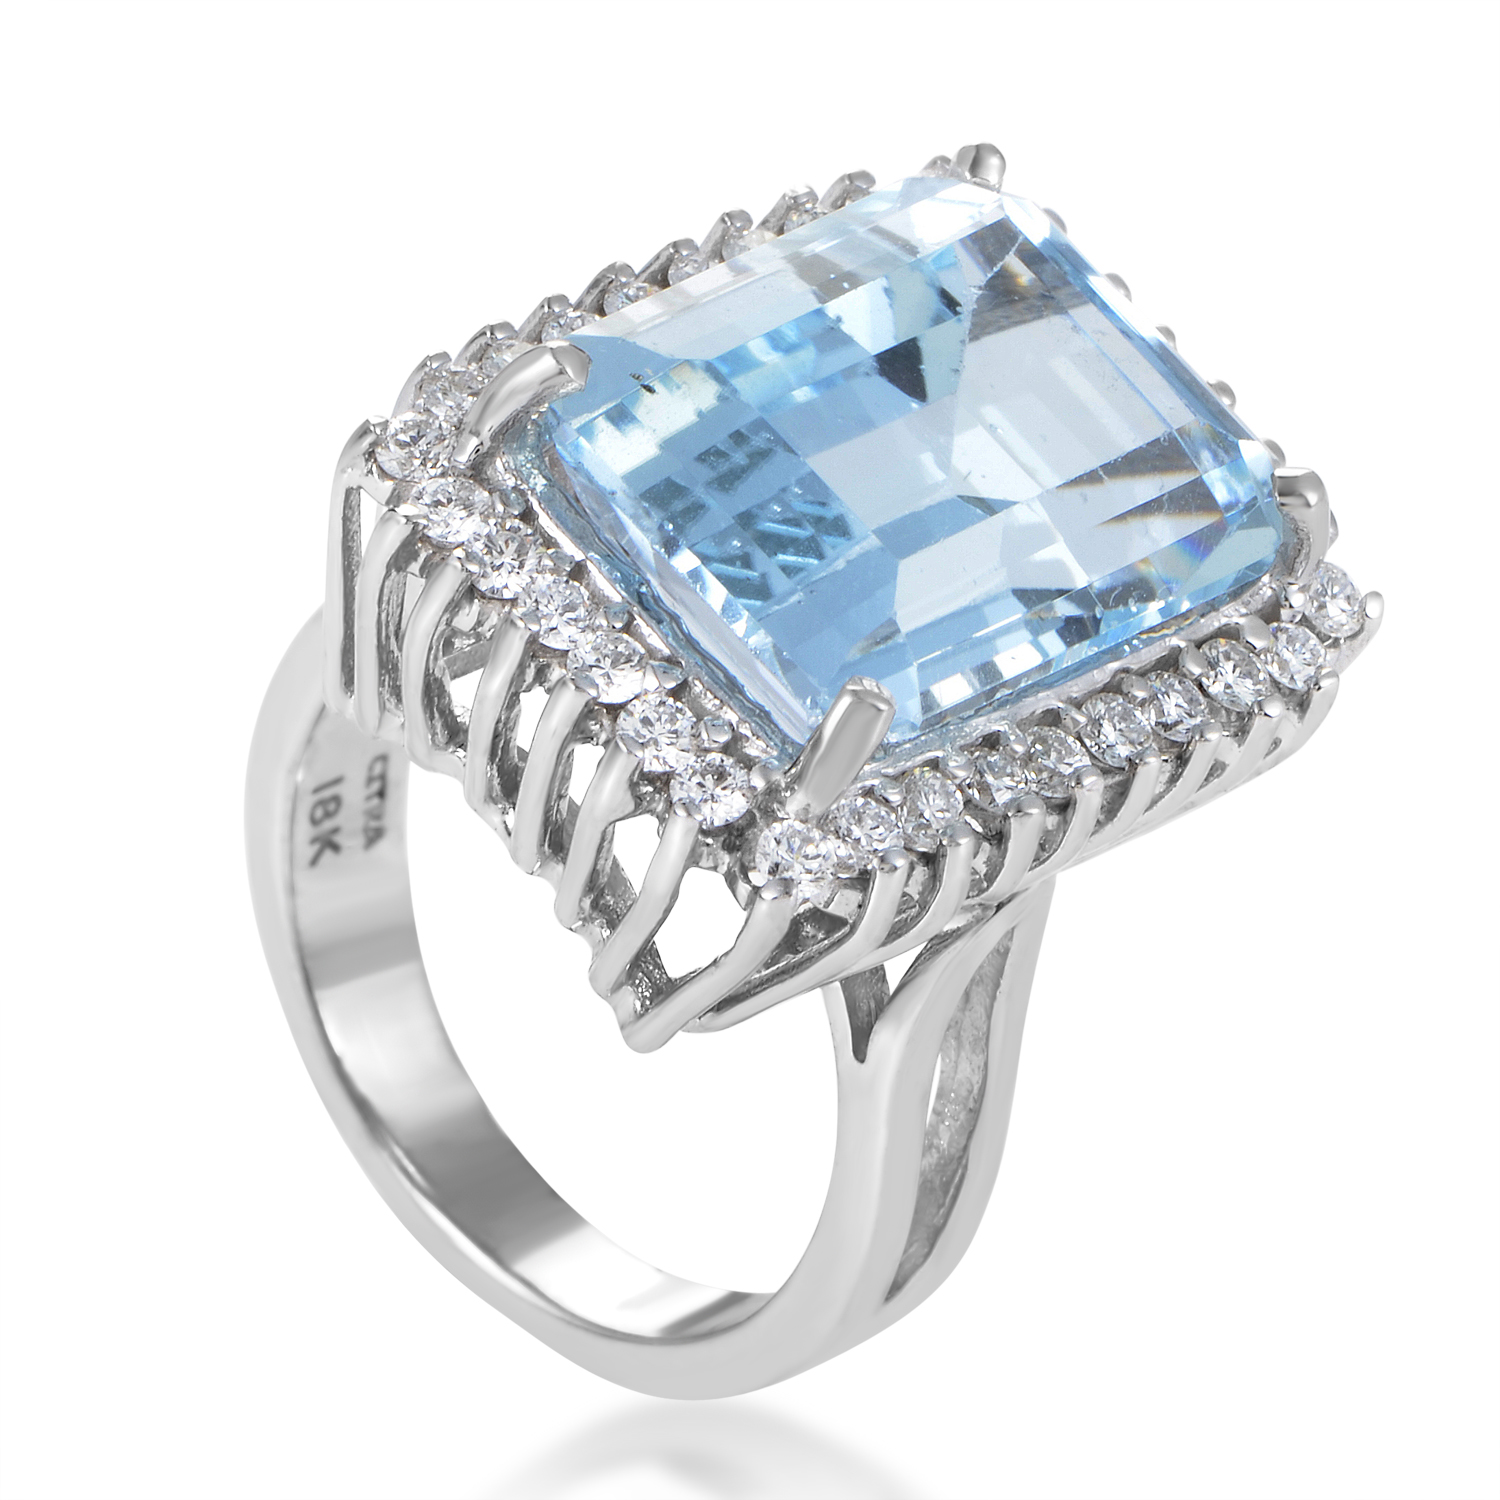 Women's 18K White Gold Diamond & Topaz Ring CI001